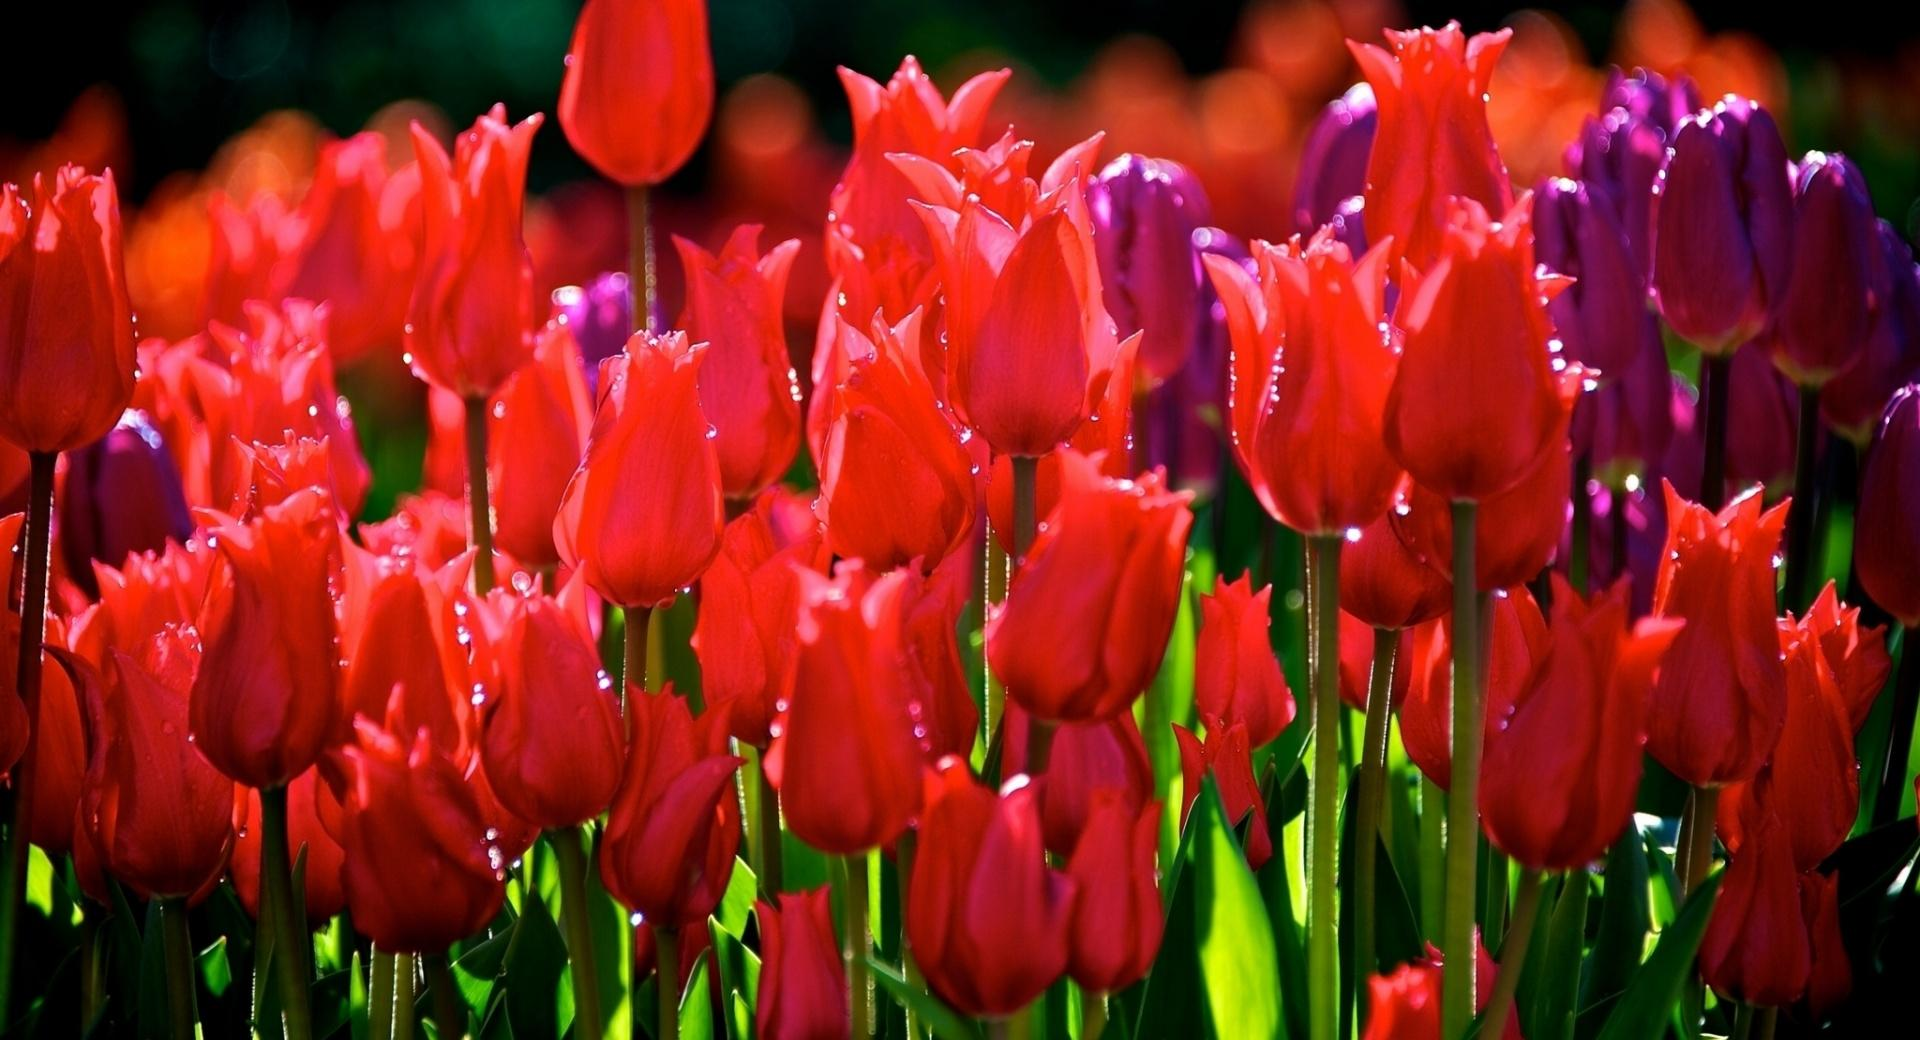 Red Tulips wallpapers HD quality